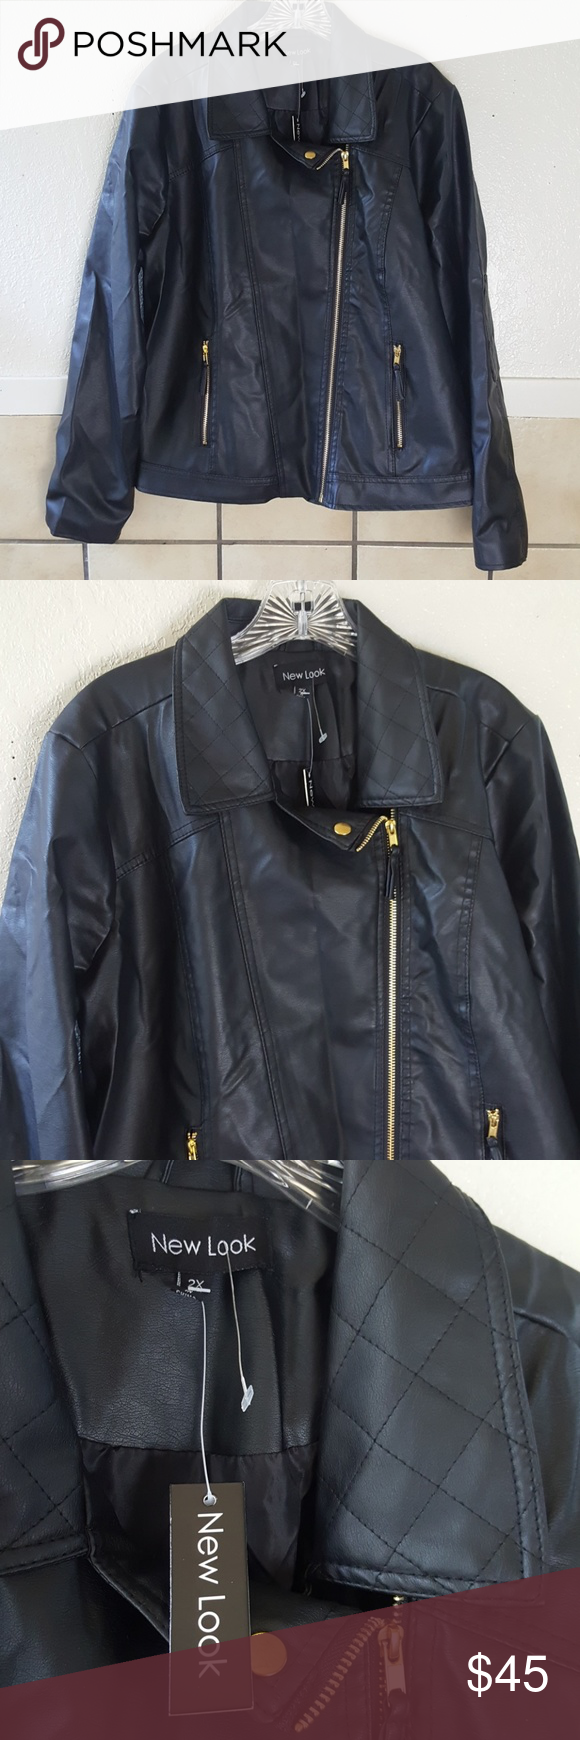 New Look Faux Leather Jacket Plus Size Nwt Nwt Black Faux Leather Moto Jacket New Look Jackets Leather Jacket